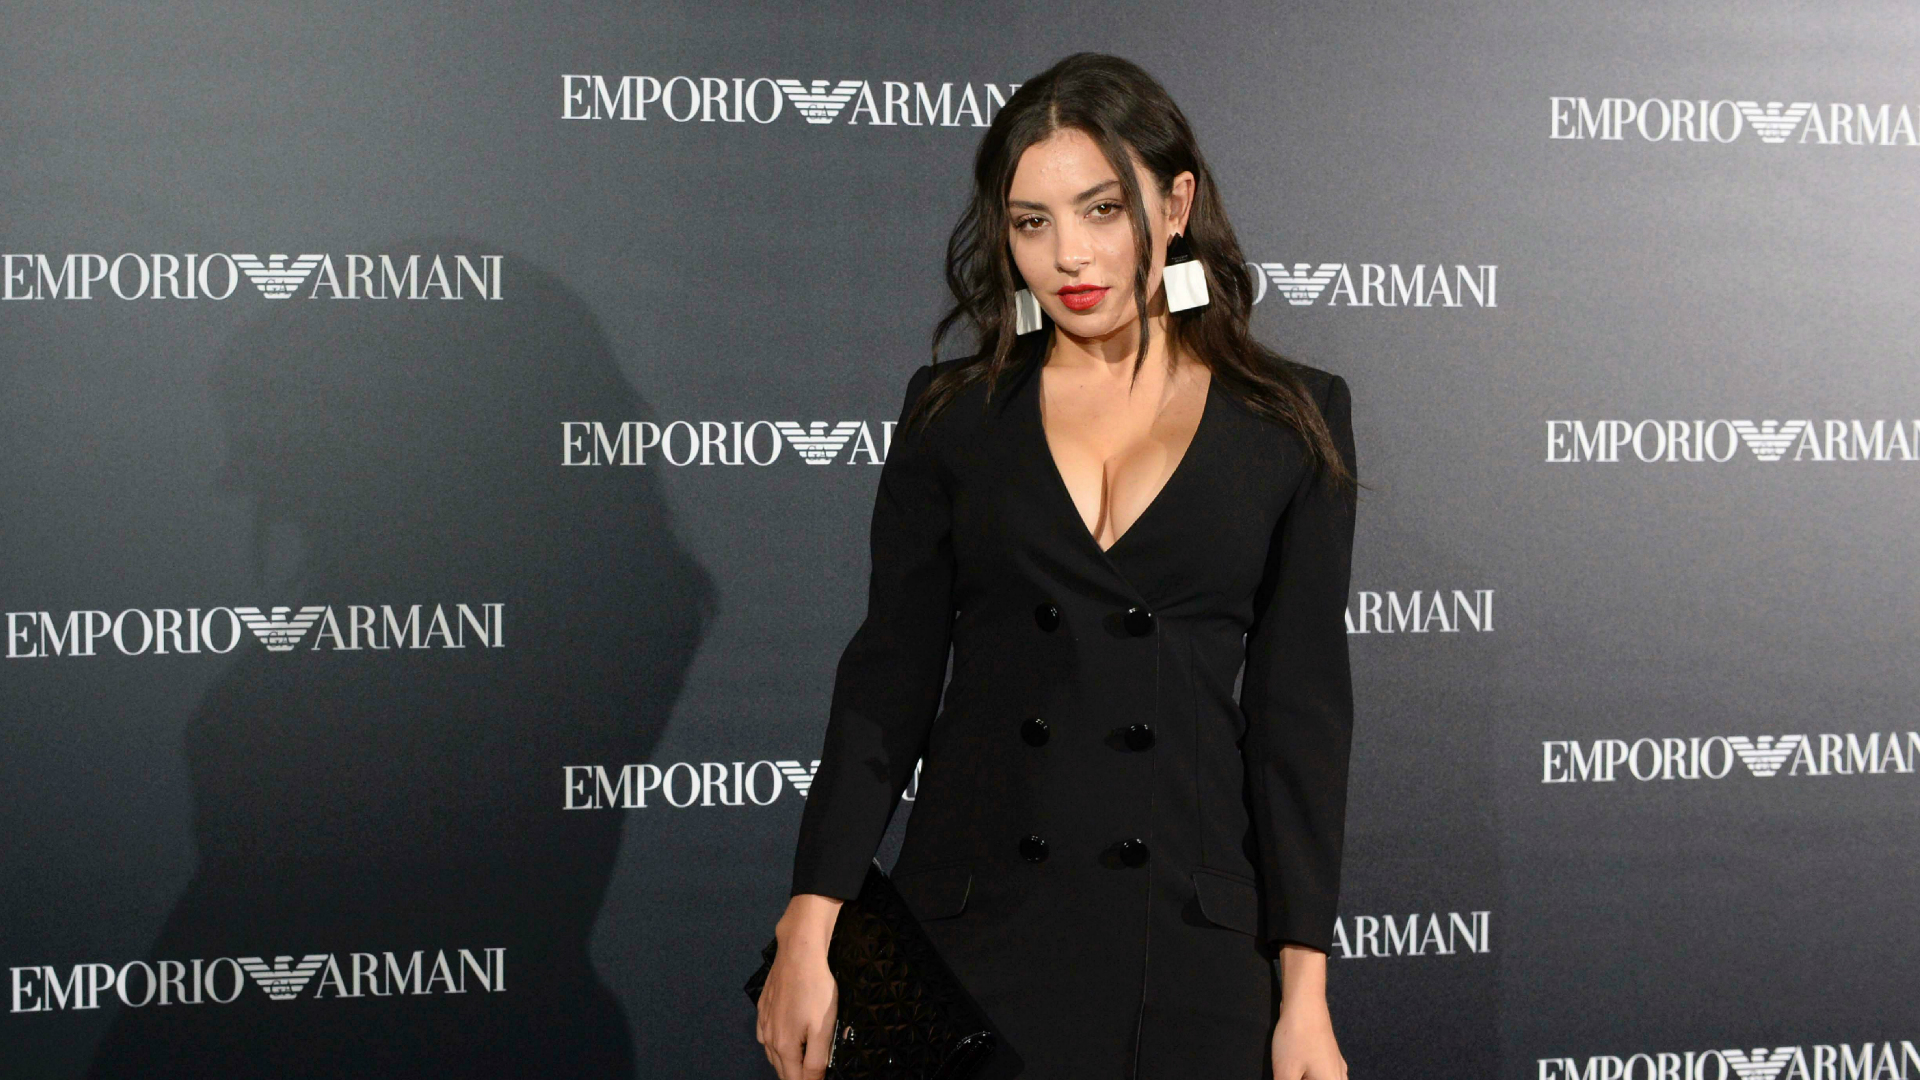 Charli XCX poses on the red carpet.